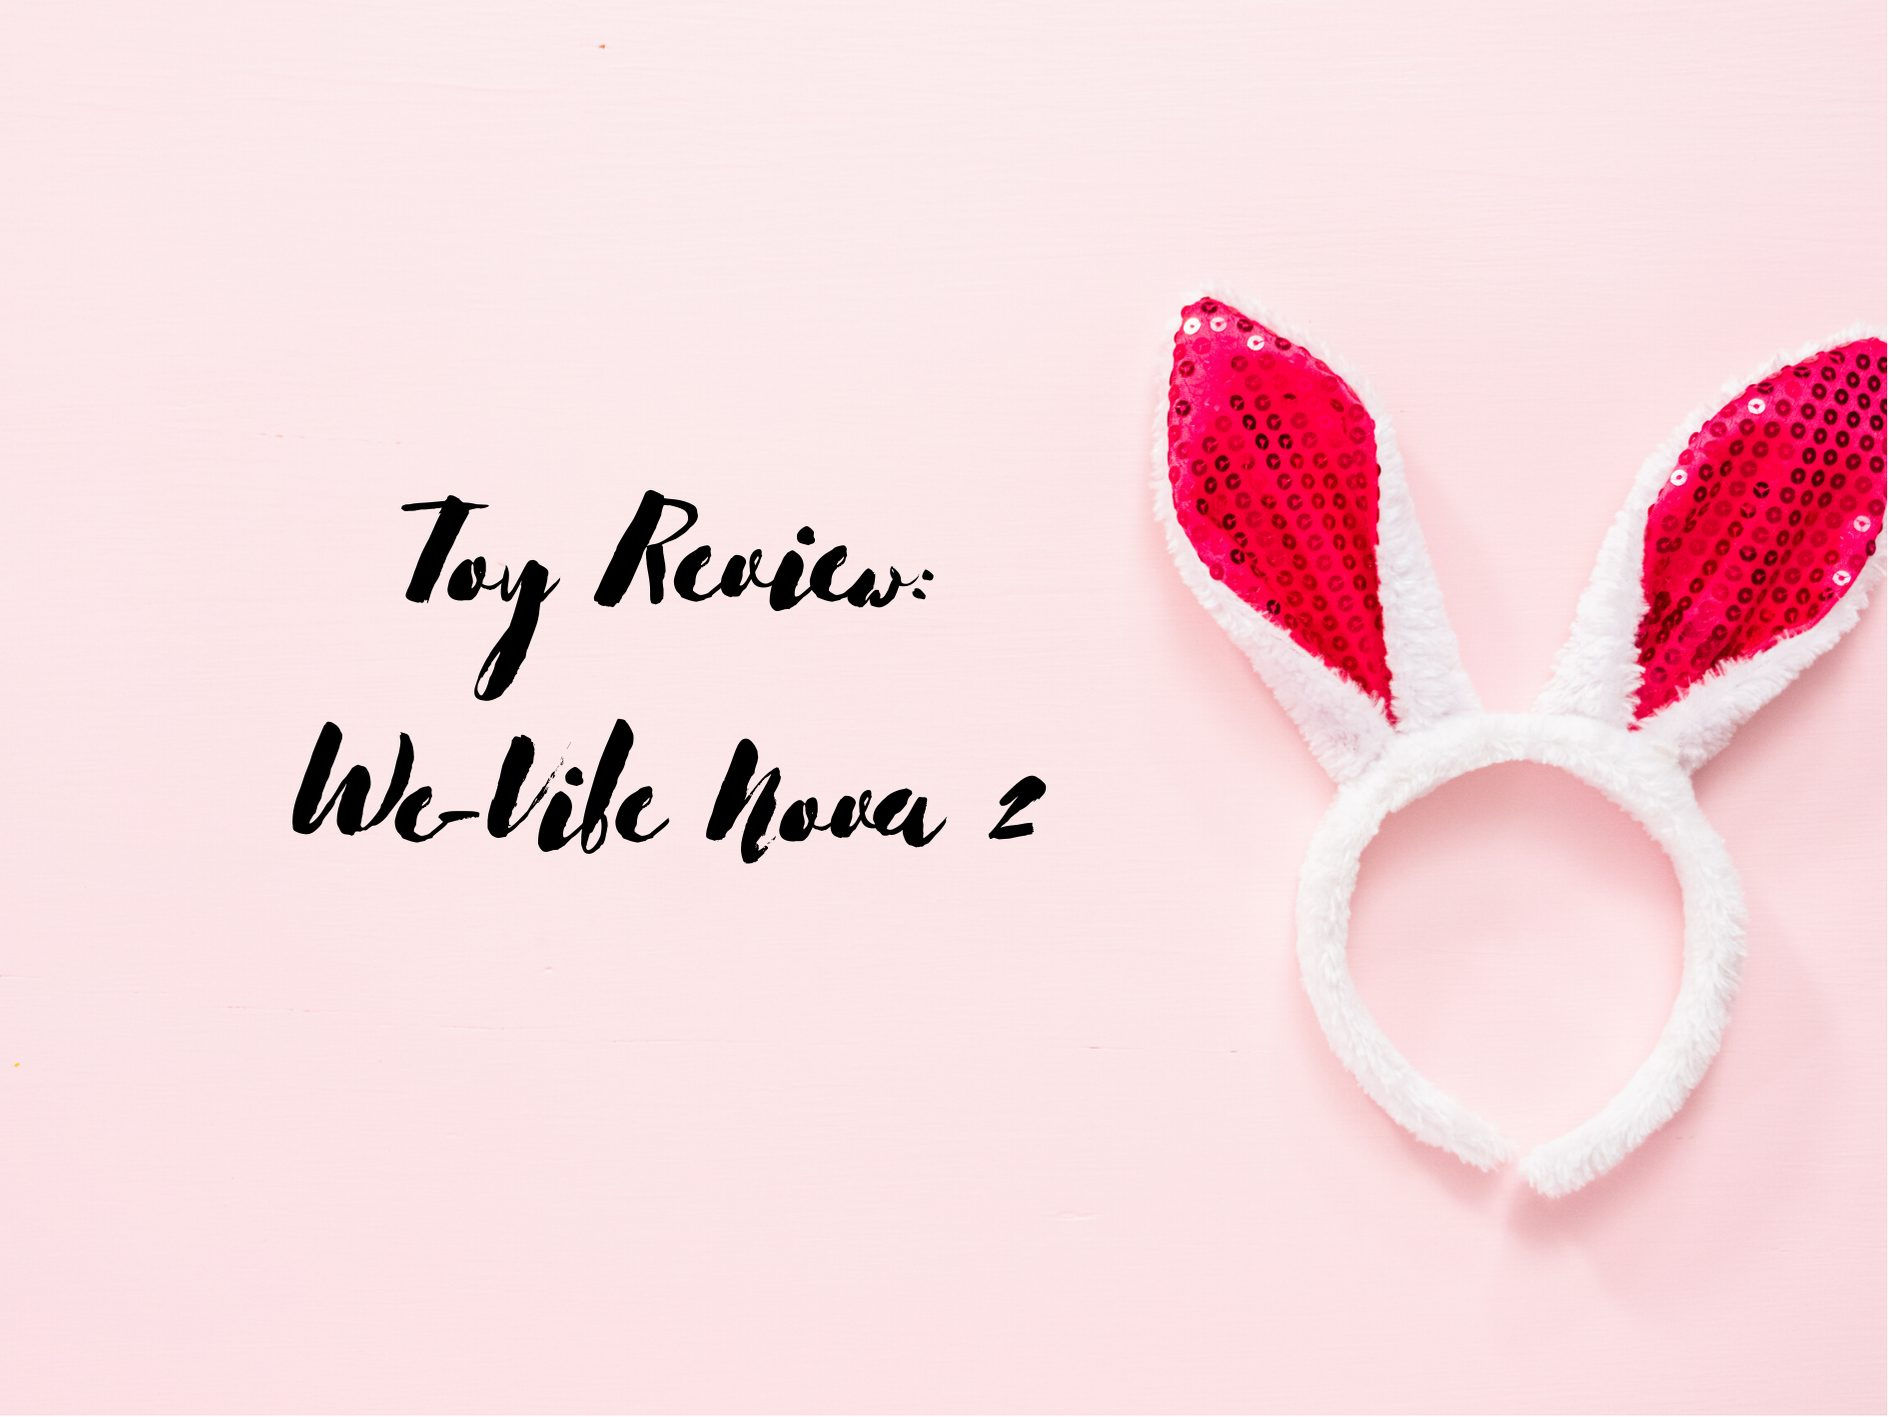 [Toy Review] We-Vibe Nova 2